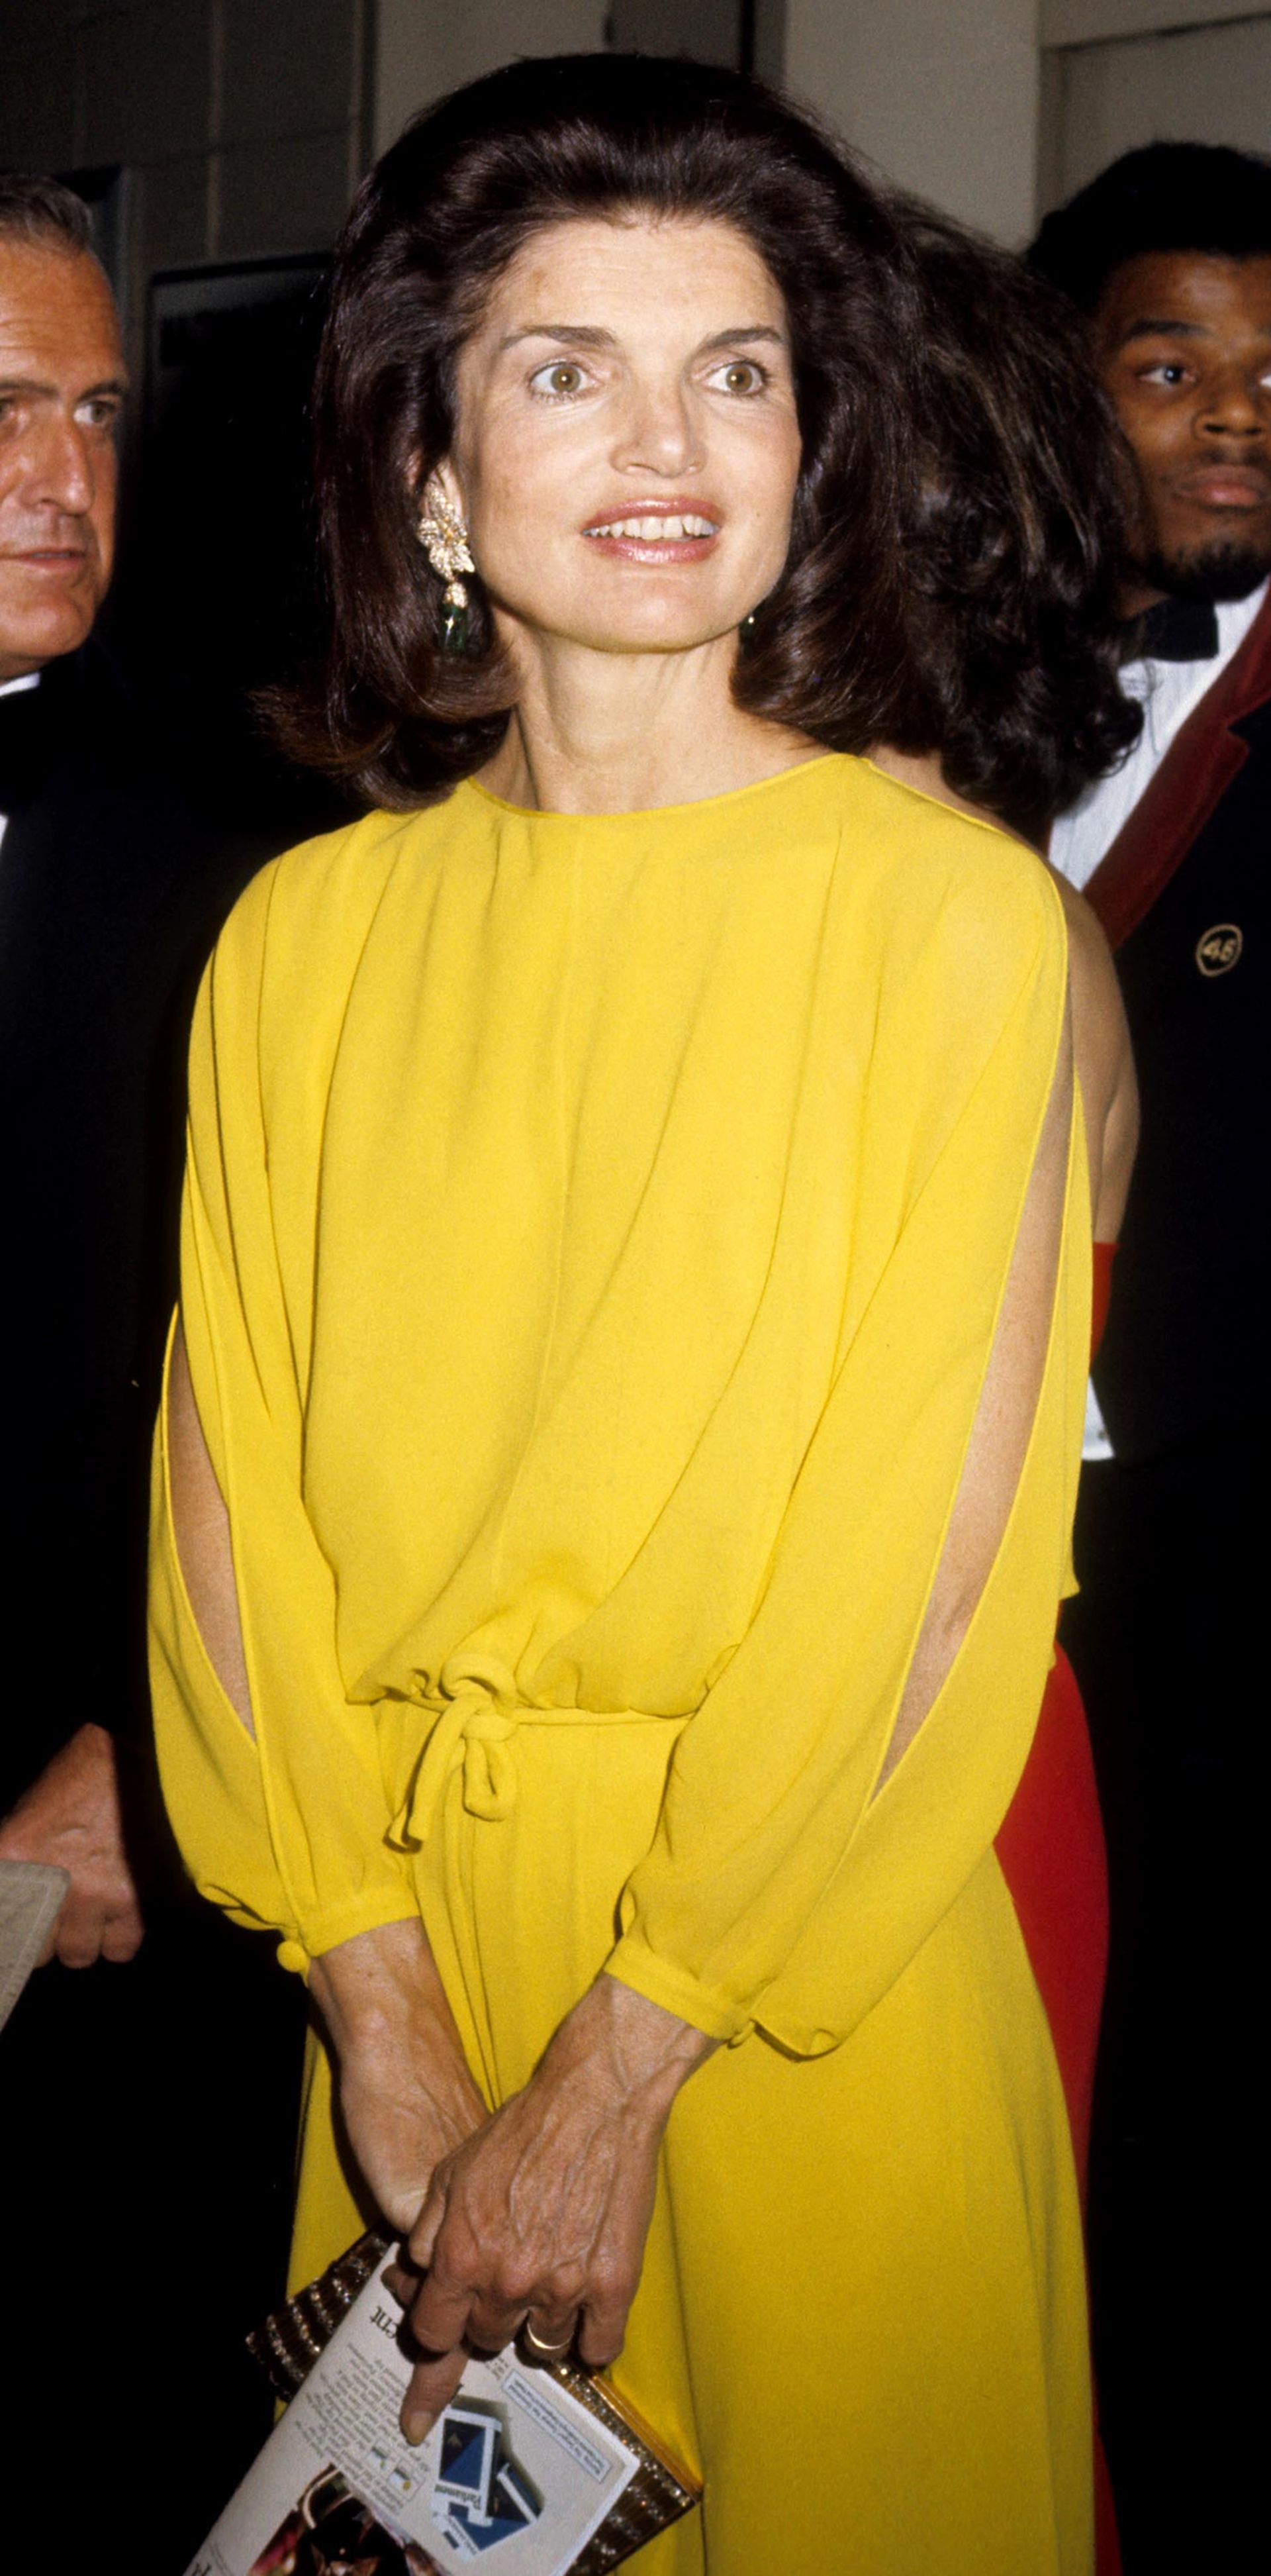 <p>It's been 89 years since Jacqueline Kennedy Onassis was born on the 28th July 1929 in Southampton New York.</p> <p>The former US first lady (from 1961-1963) passed away in May 1994 aged 64 from Non-Hodgkin lymphoma.</p> <p>Despite the lengthy passage in time, the timeless appeal and legendary glamour of one of the most iconic faces of the 20th century still holds true today.</p> <p>From her love affair with European designers such as Valentino, Saint Laurent and Chanel, to her penchant for oversized sunglasses and capri sandals, Jackie O's name still reigns synonymous with classic style and grace.<br /> <br /> In honour of the late style icon we look at how we can channel some of her best  looks in 2018.</p> <p>Click through to see which Jackie-O approved items need a place in your wardrobe.</p>